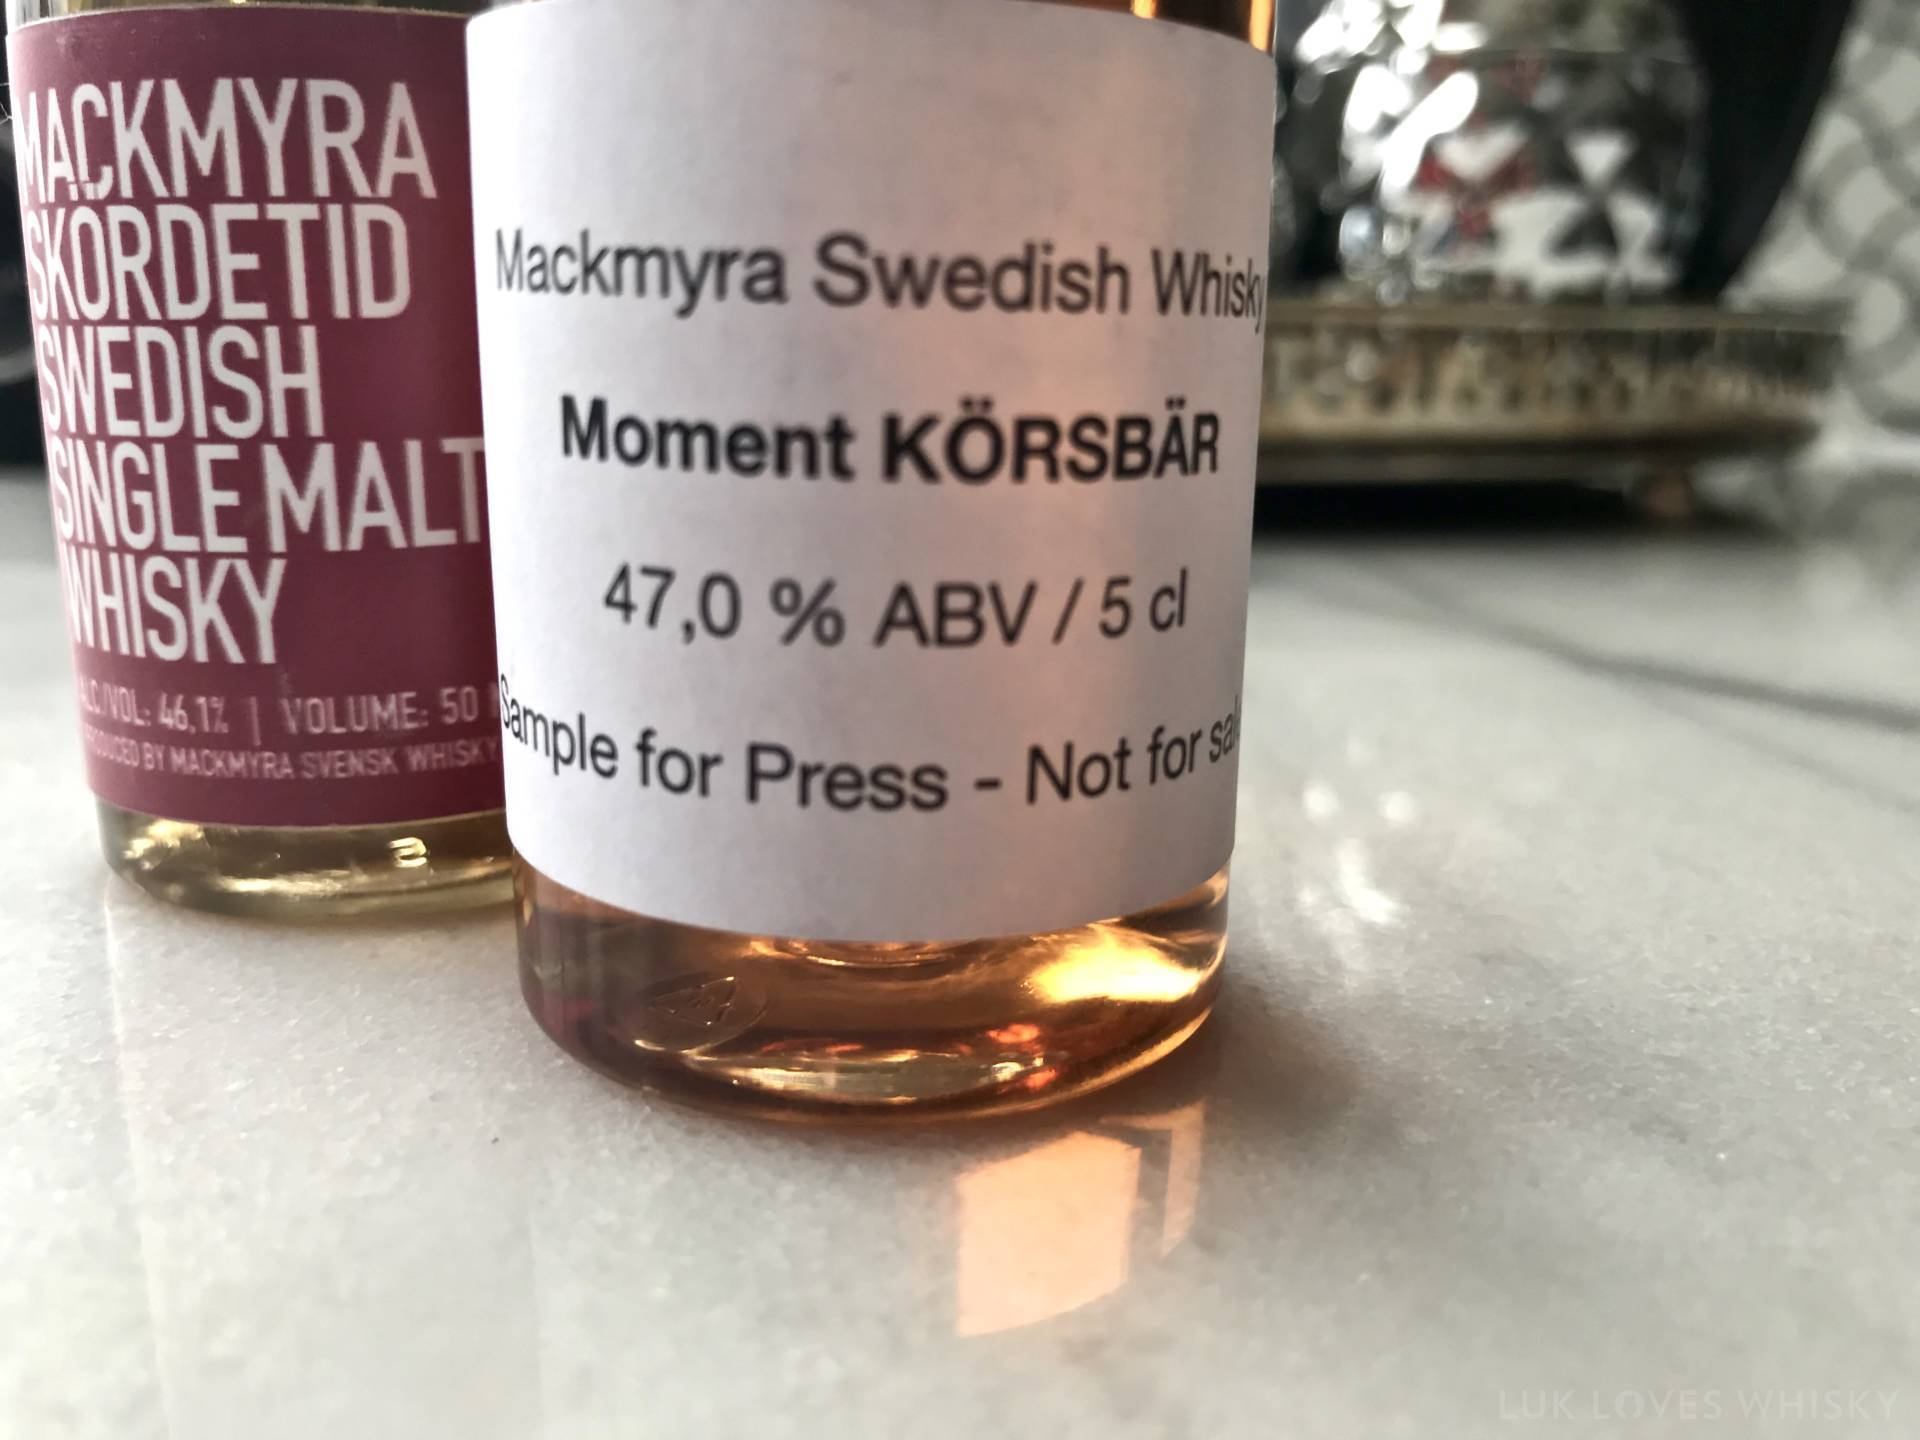 Swedish single malt whisky